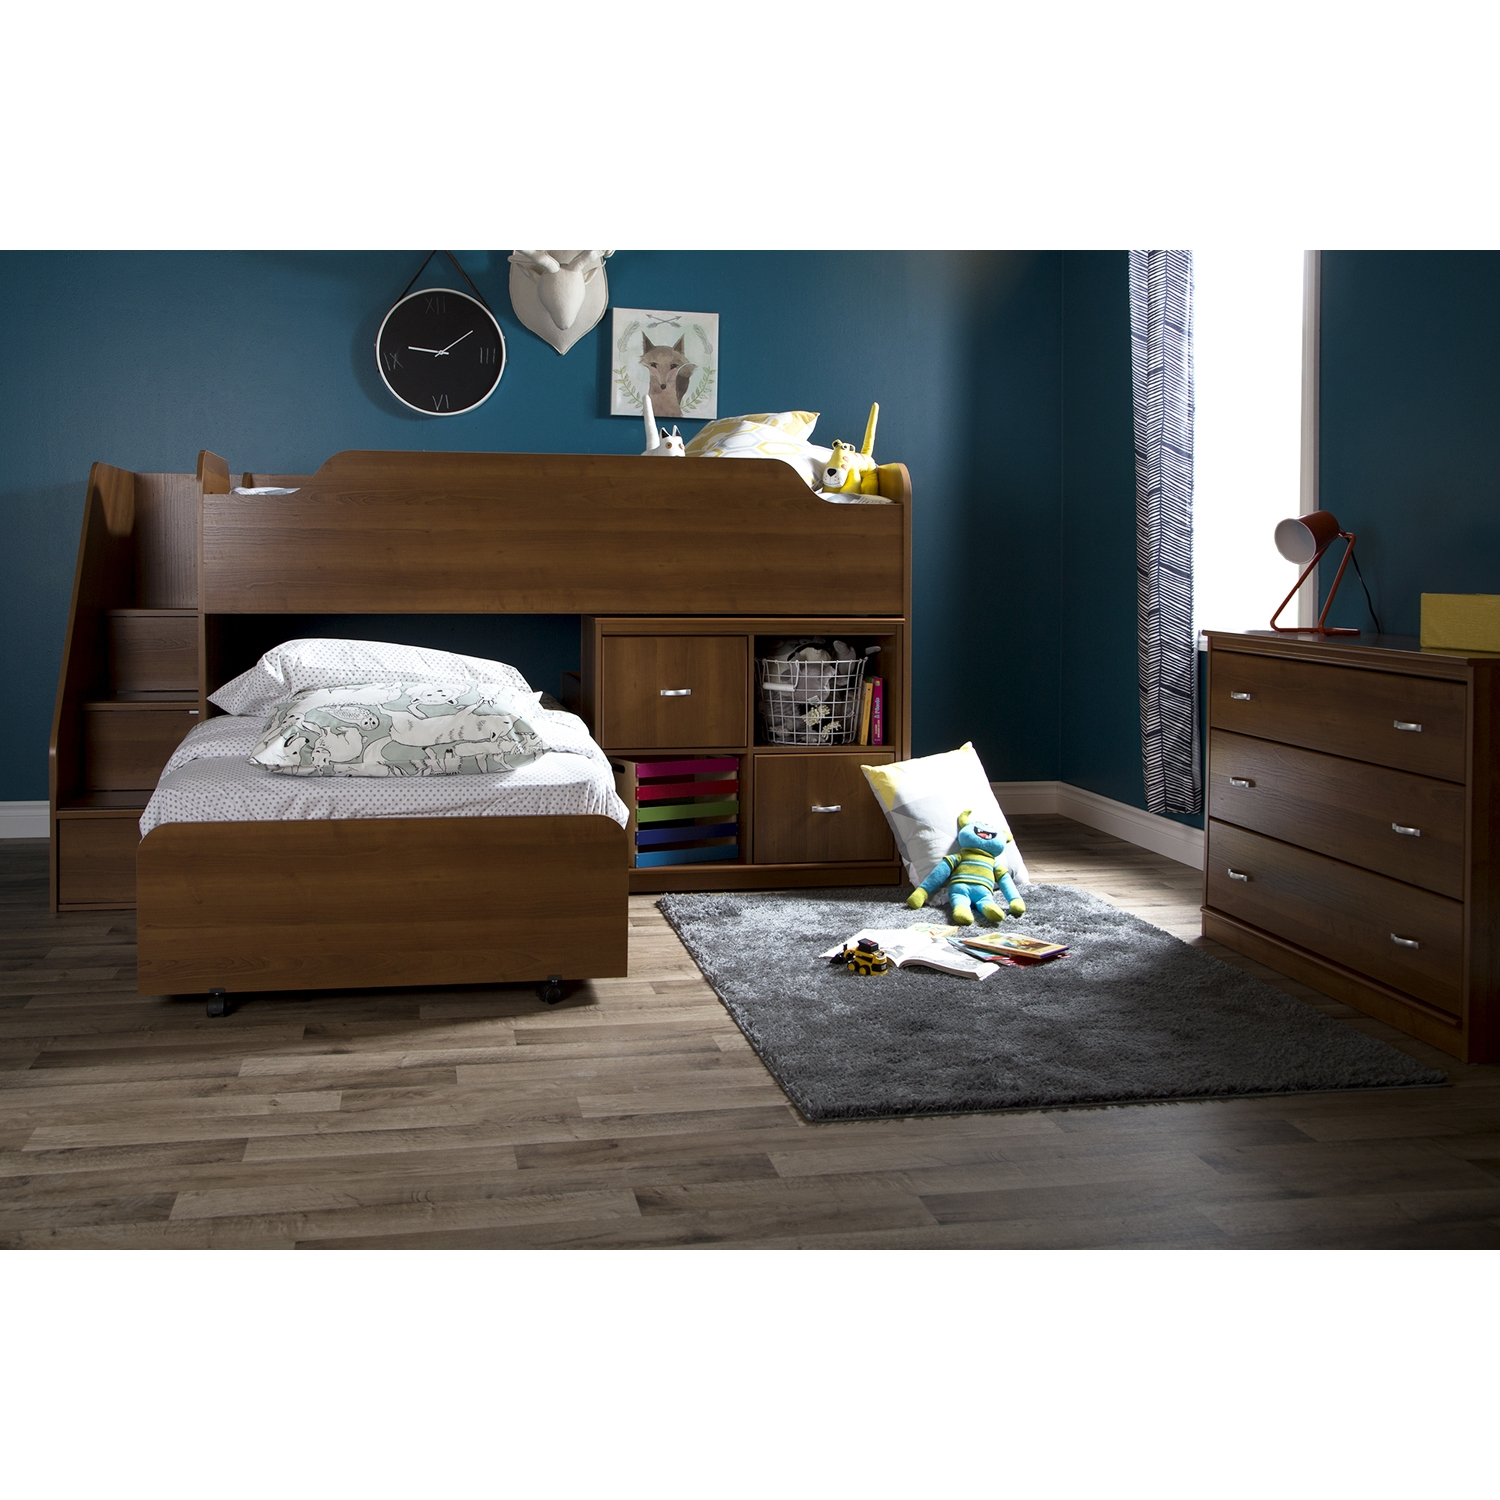 Mobby Twin Loft Bed with Stairs - Morgan Cherry - SS-9055087